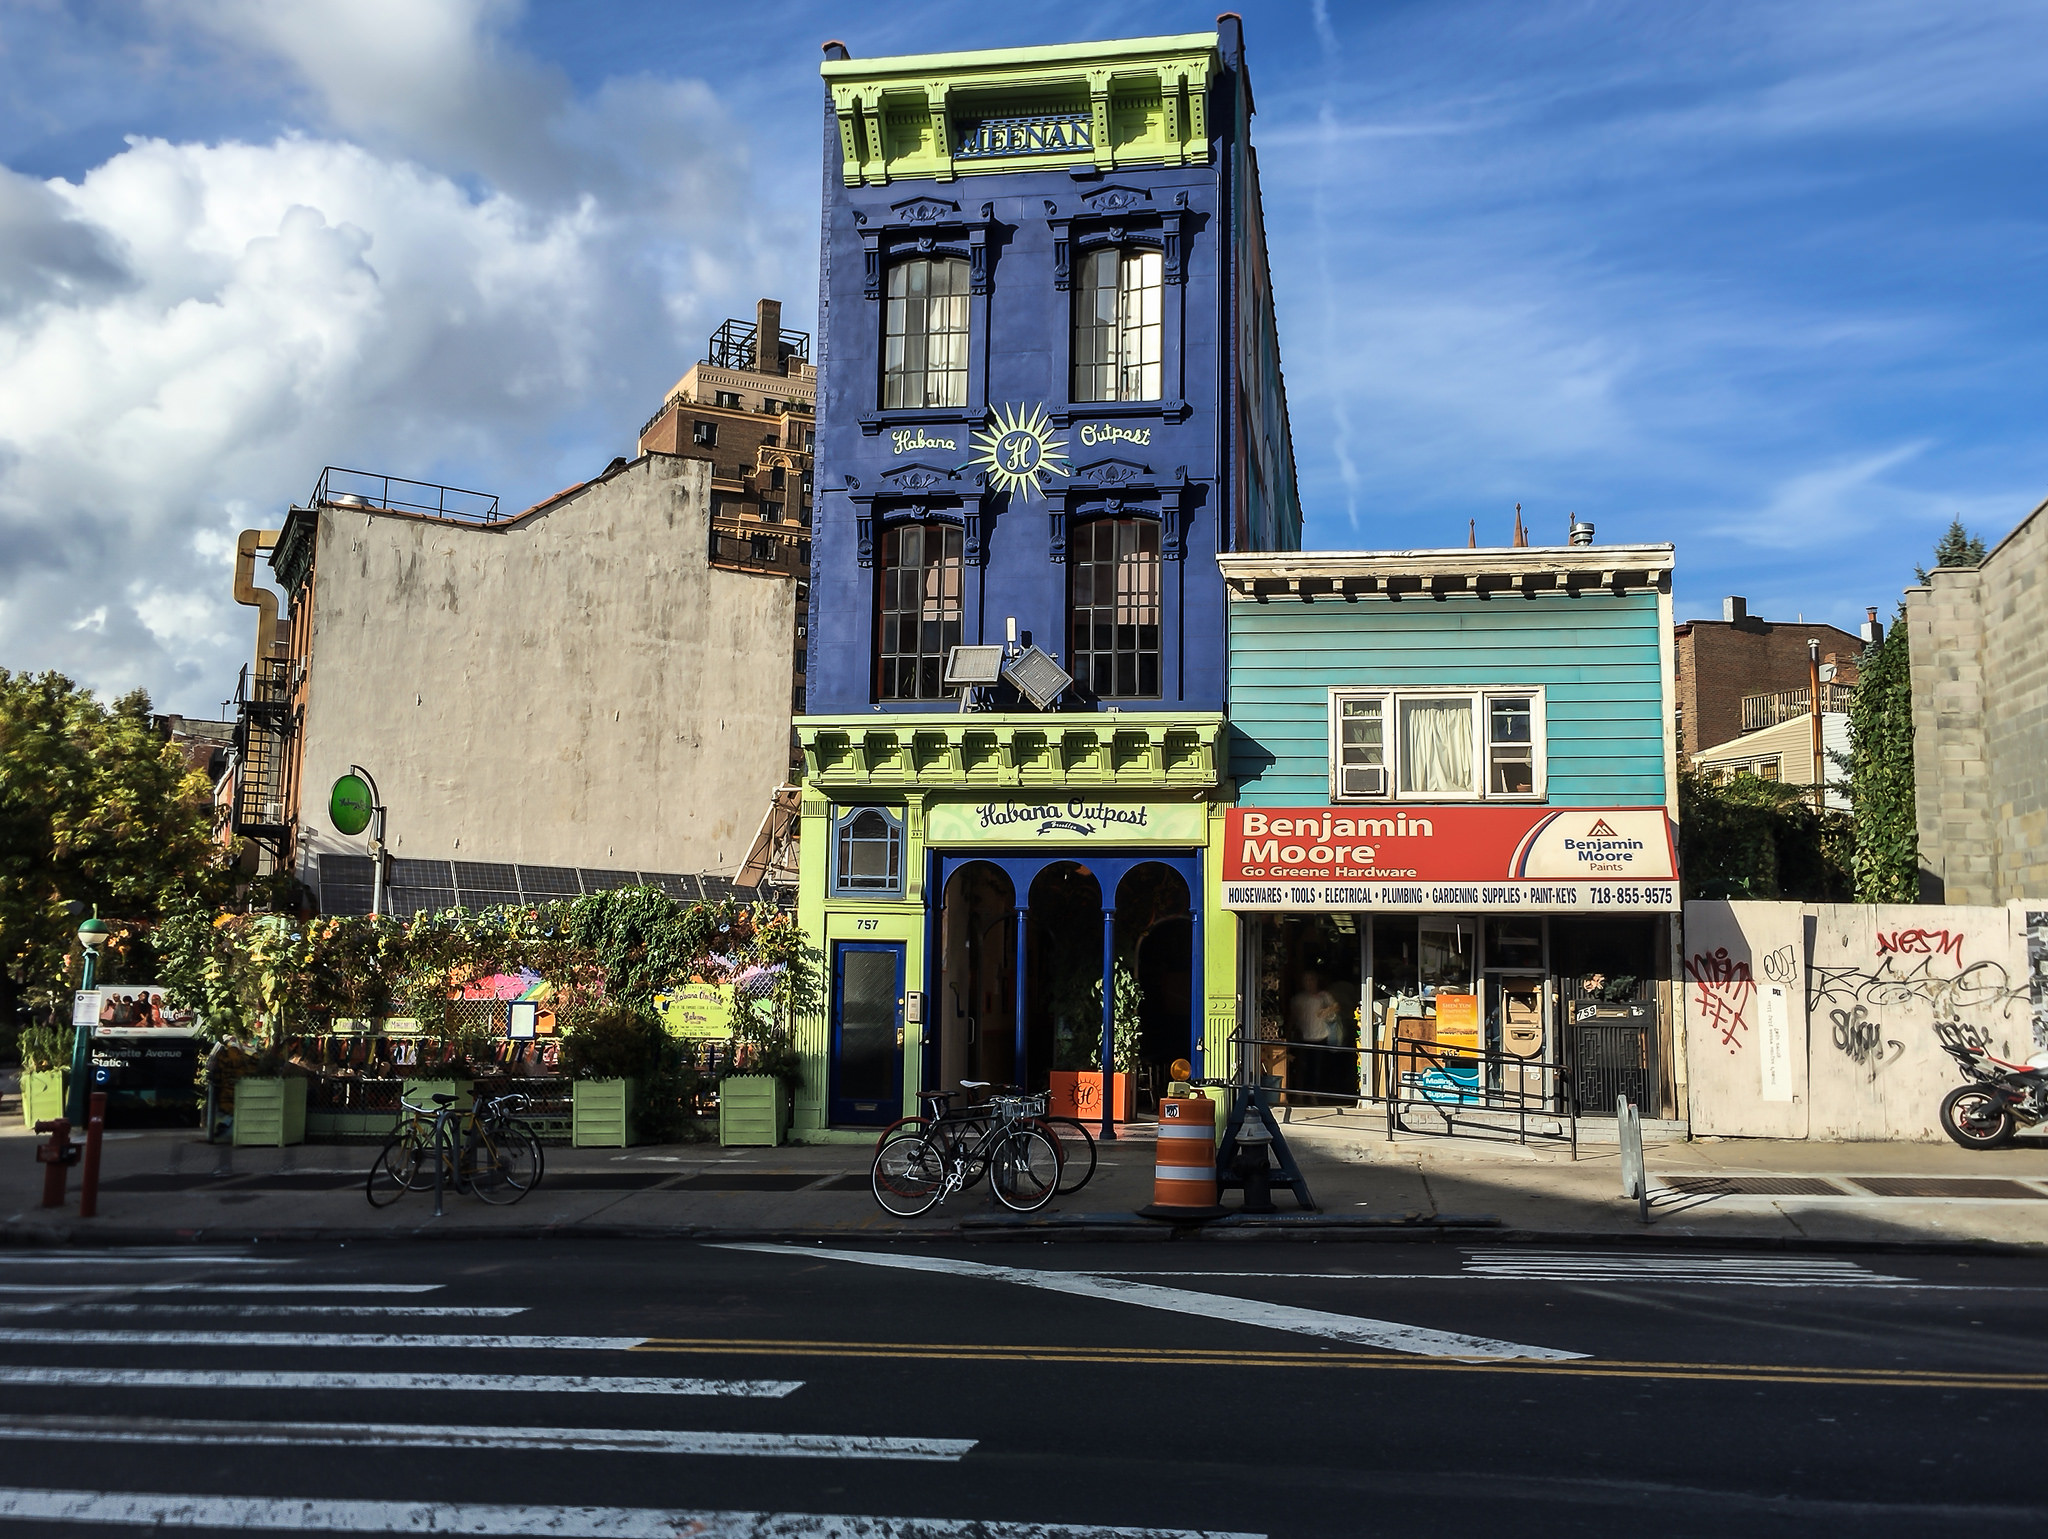 Fort Greene Predicted To Be The Hottest Brooklyn Neighborhood in 2017